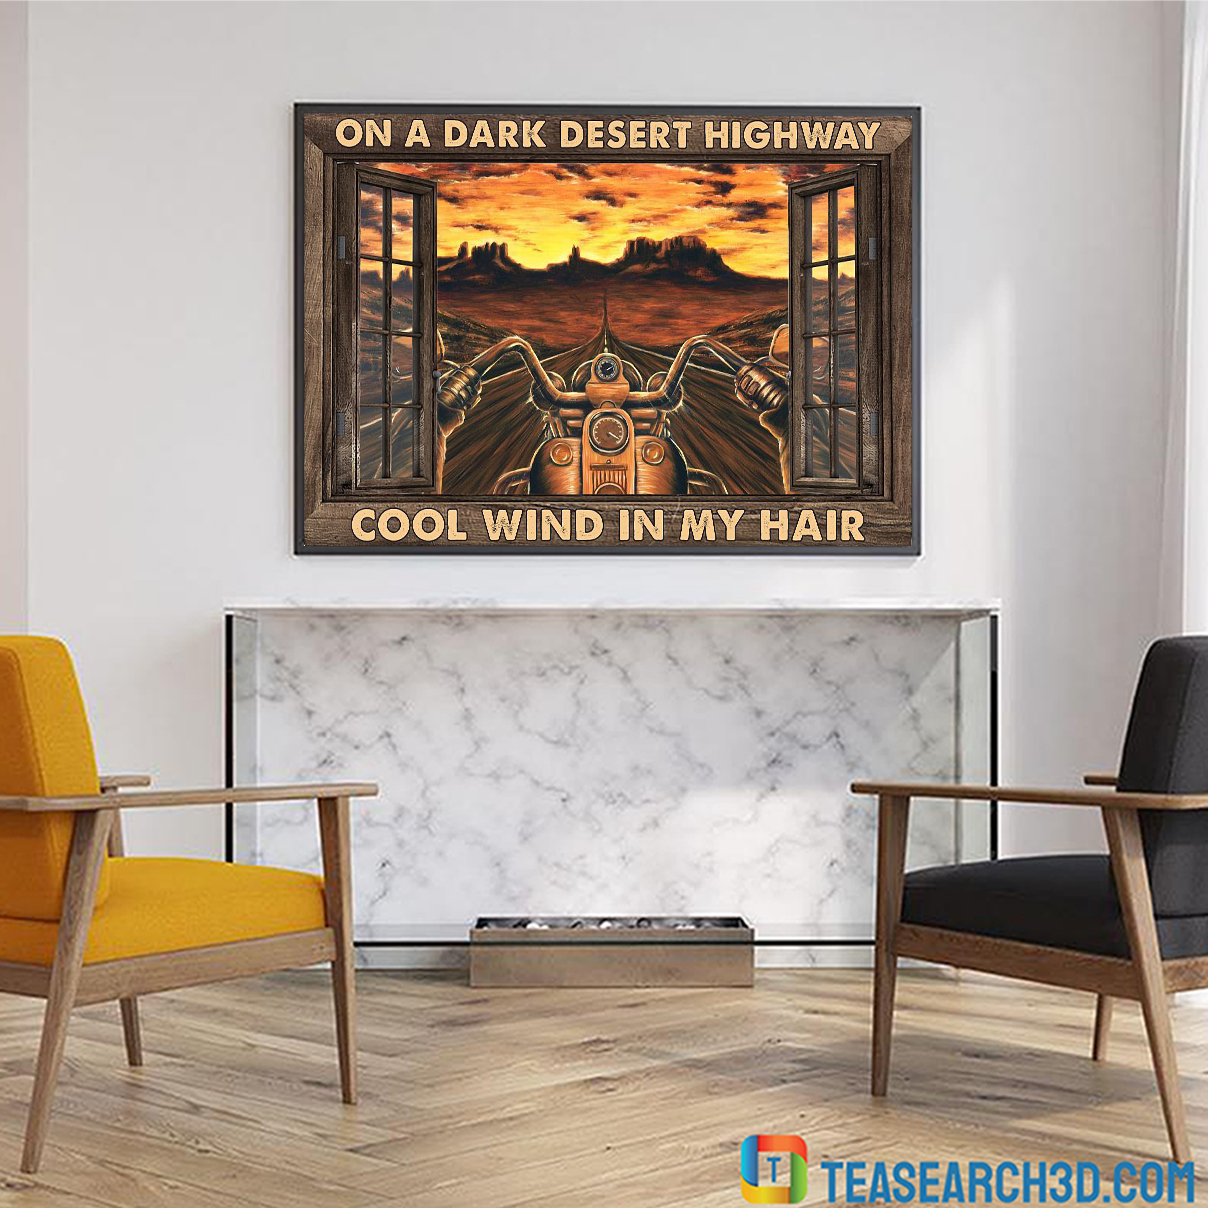 Motorcycle on a dark desert highway cool wind in my hair window poster A4